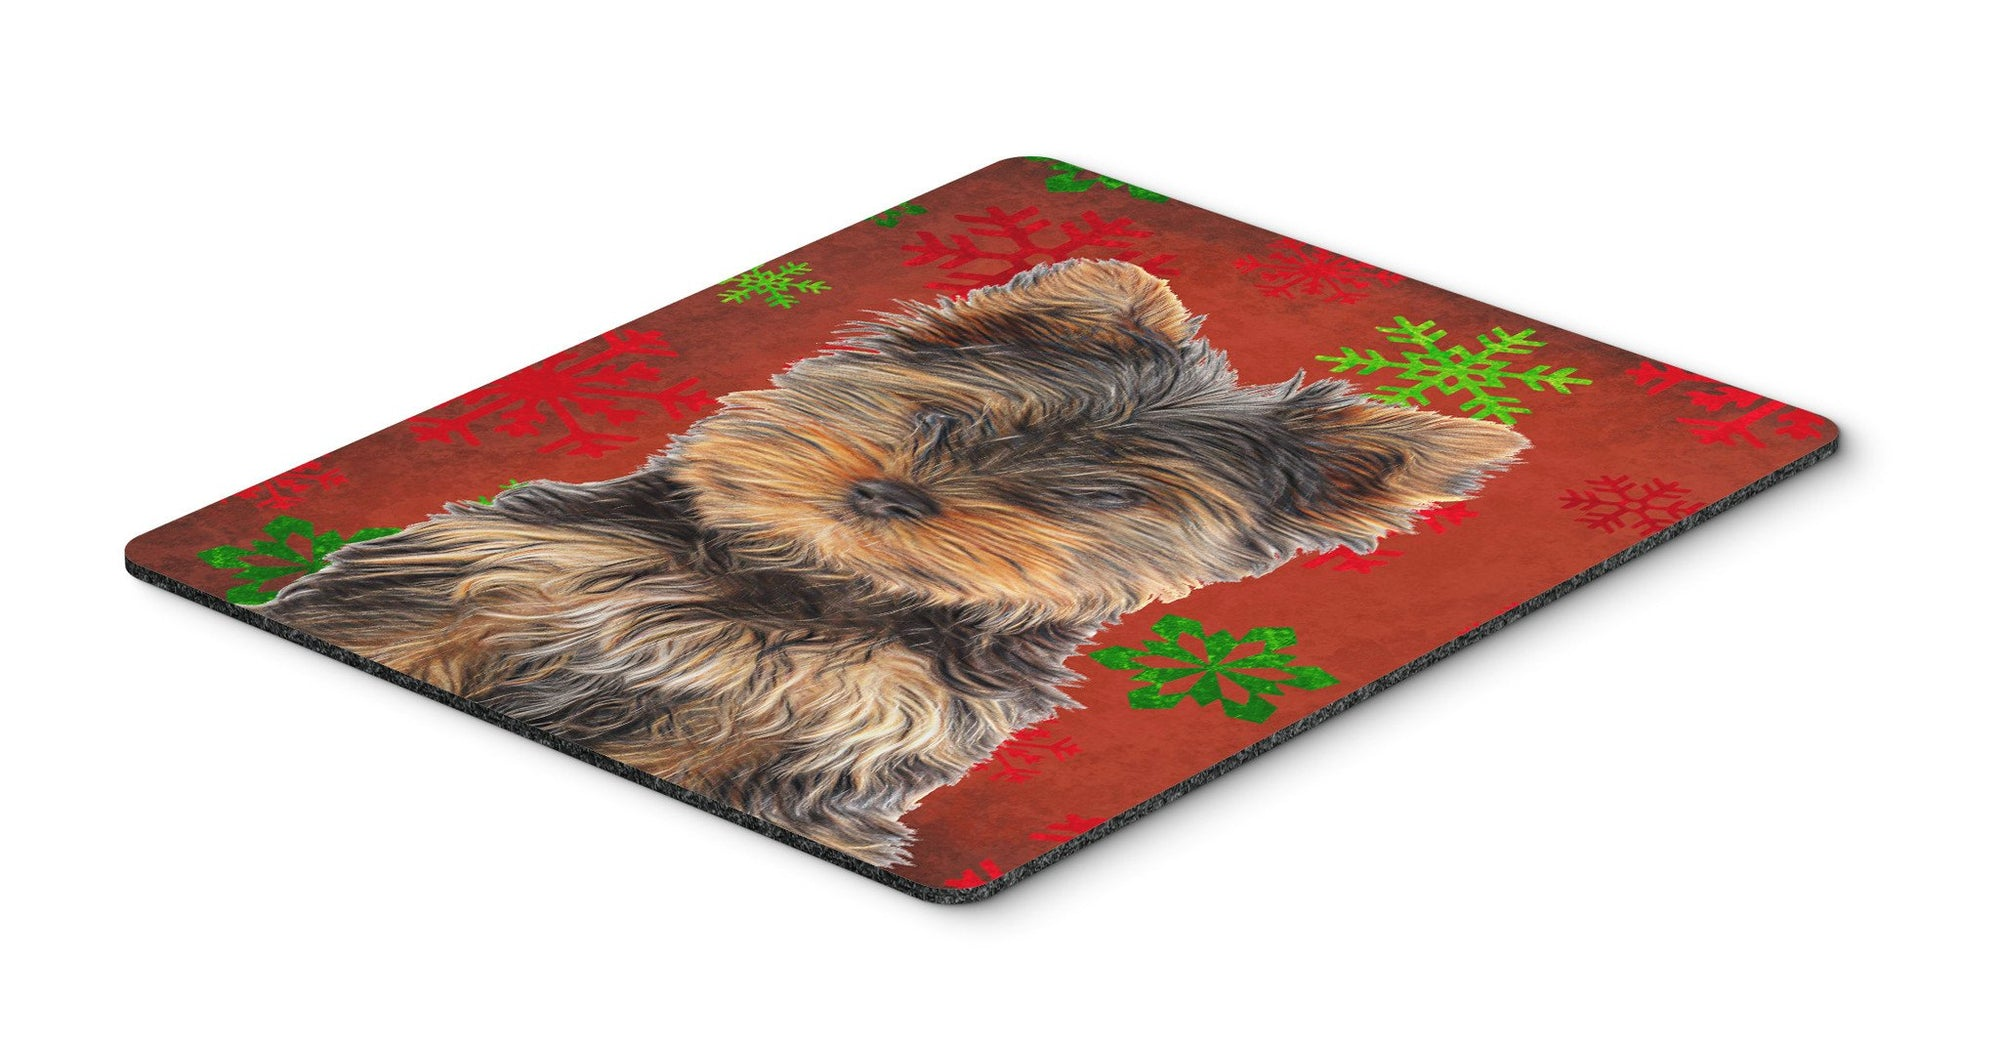 Buy this Red Snowflakes Holiday Christmas Yorkie Puppy / Yorkshire Terrier Mouse Pad, Hot Pad or Trivet KJ1188MP